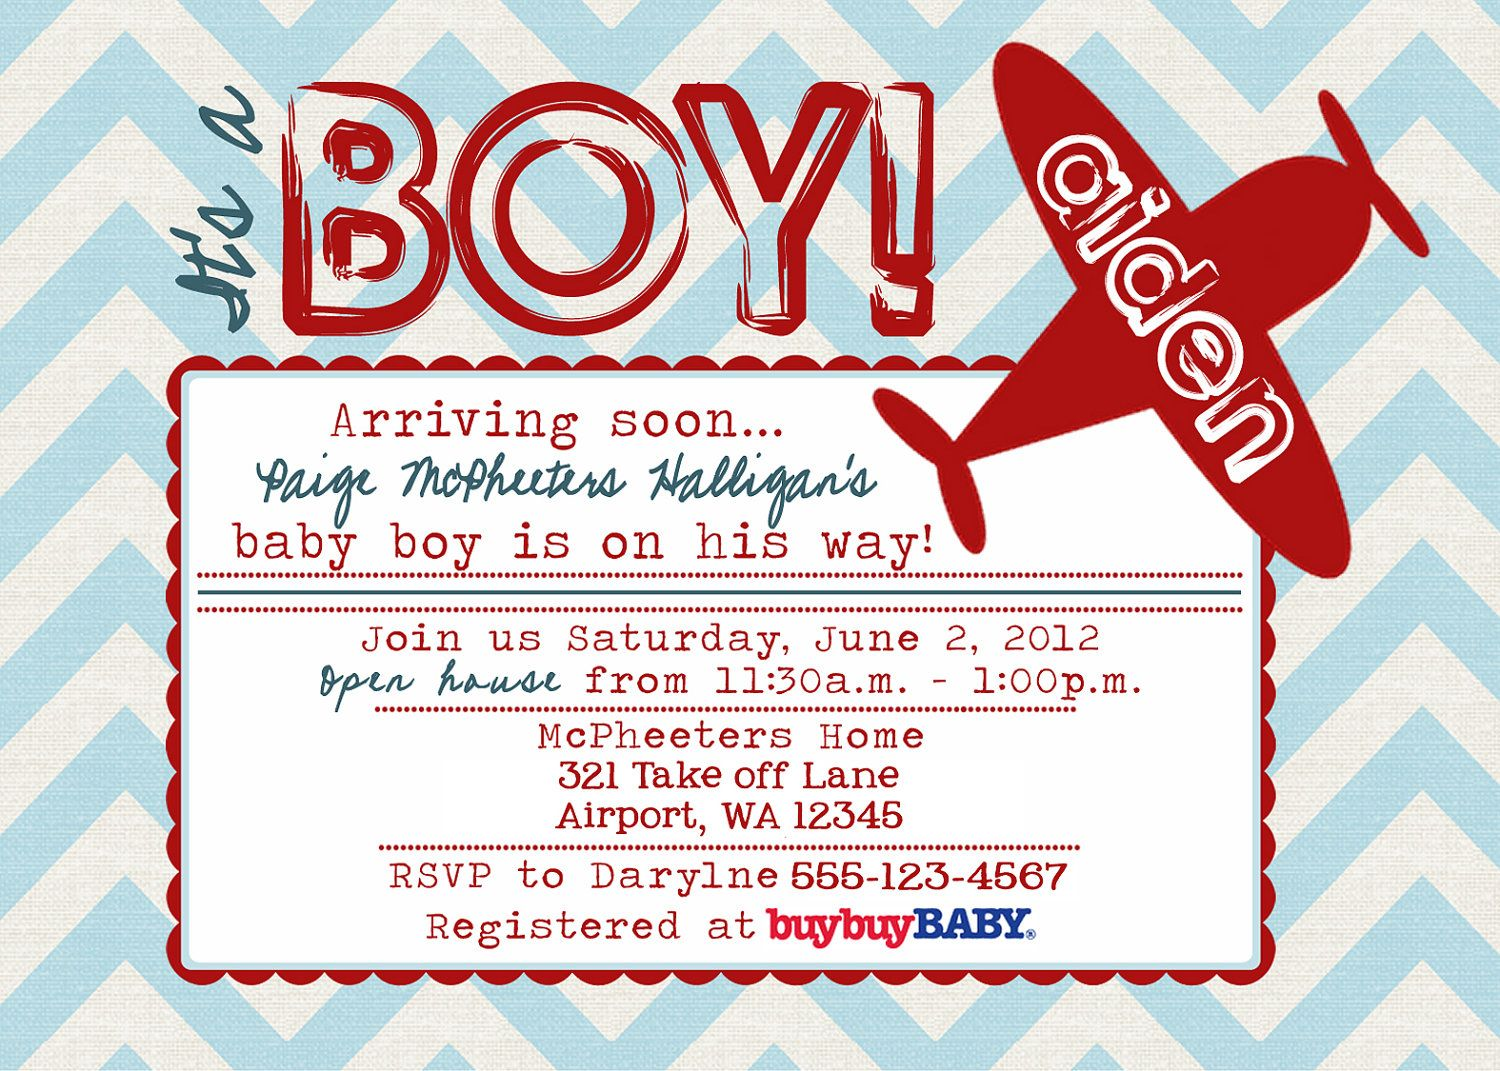 Beautiful Printable POSTCARD Vintage Airplane Baby Shower Invitation    A Custom  Postcard Digital Or Printed For You